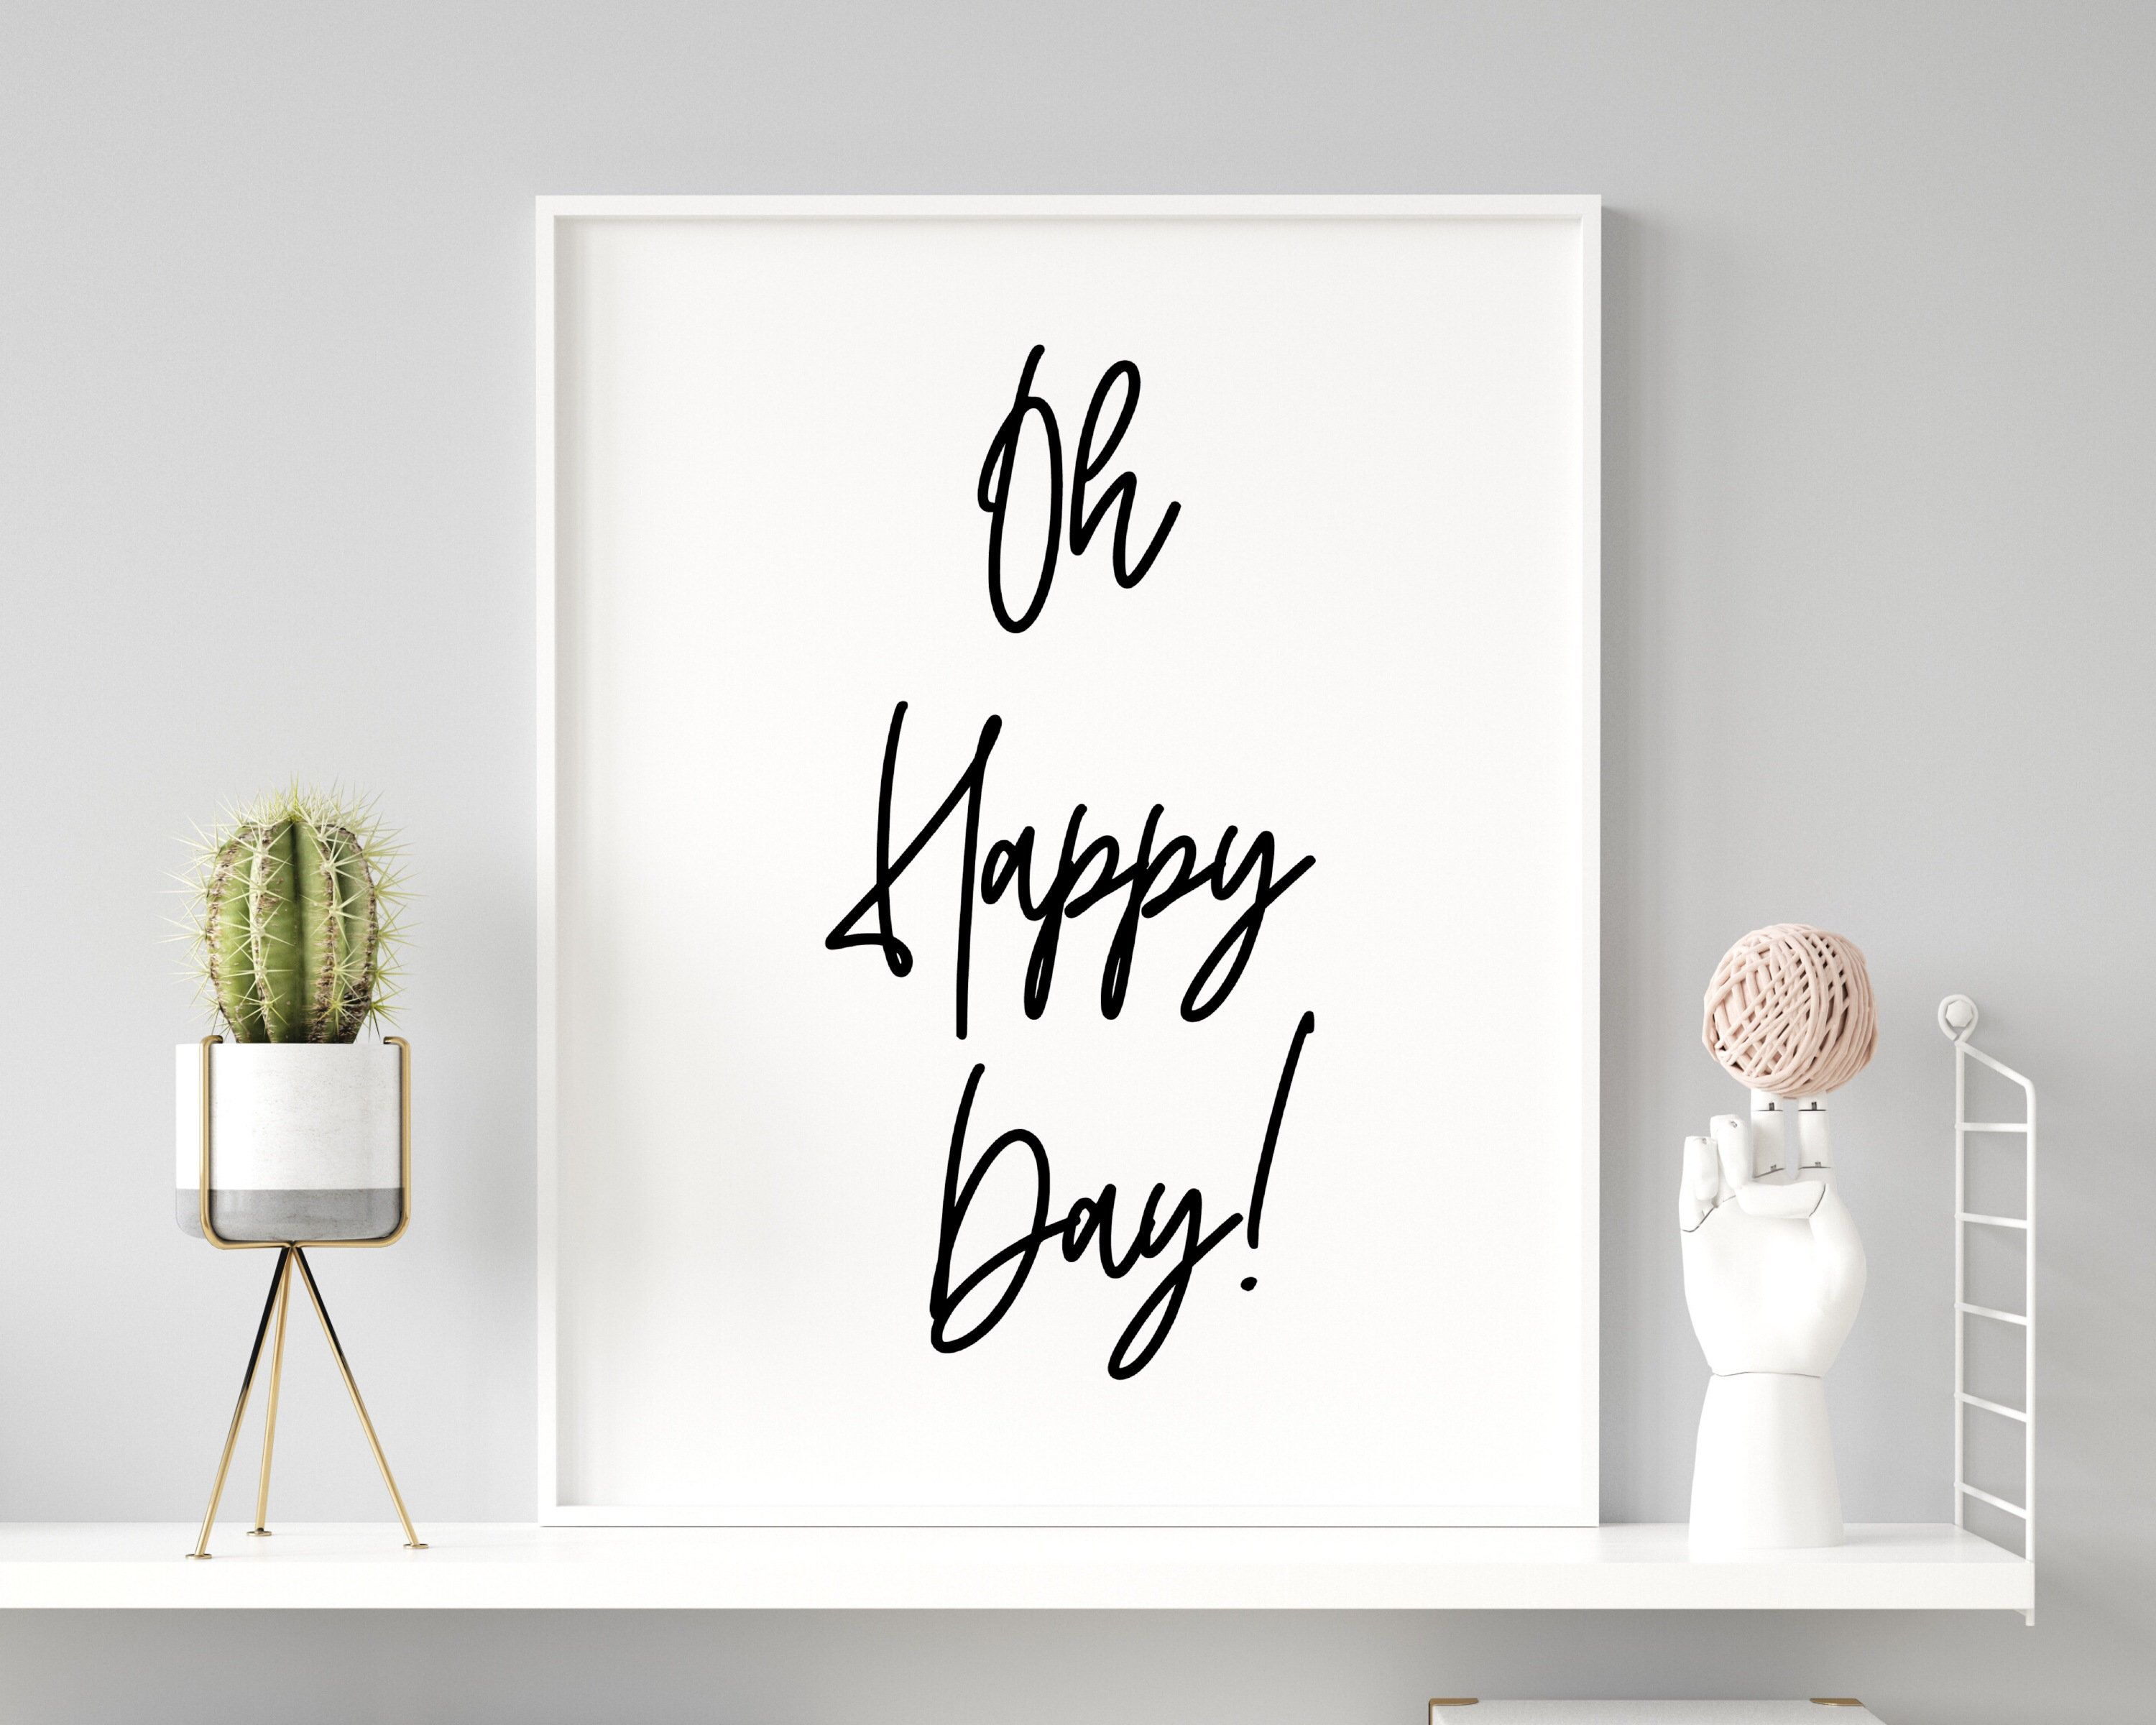 Oh Happy Day Uplifting Quote Inspirational Wall Art   Etsy